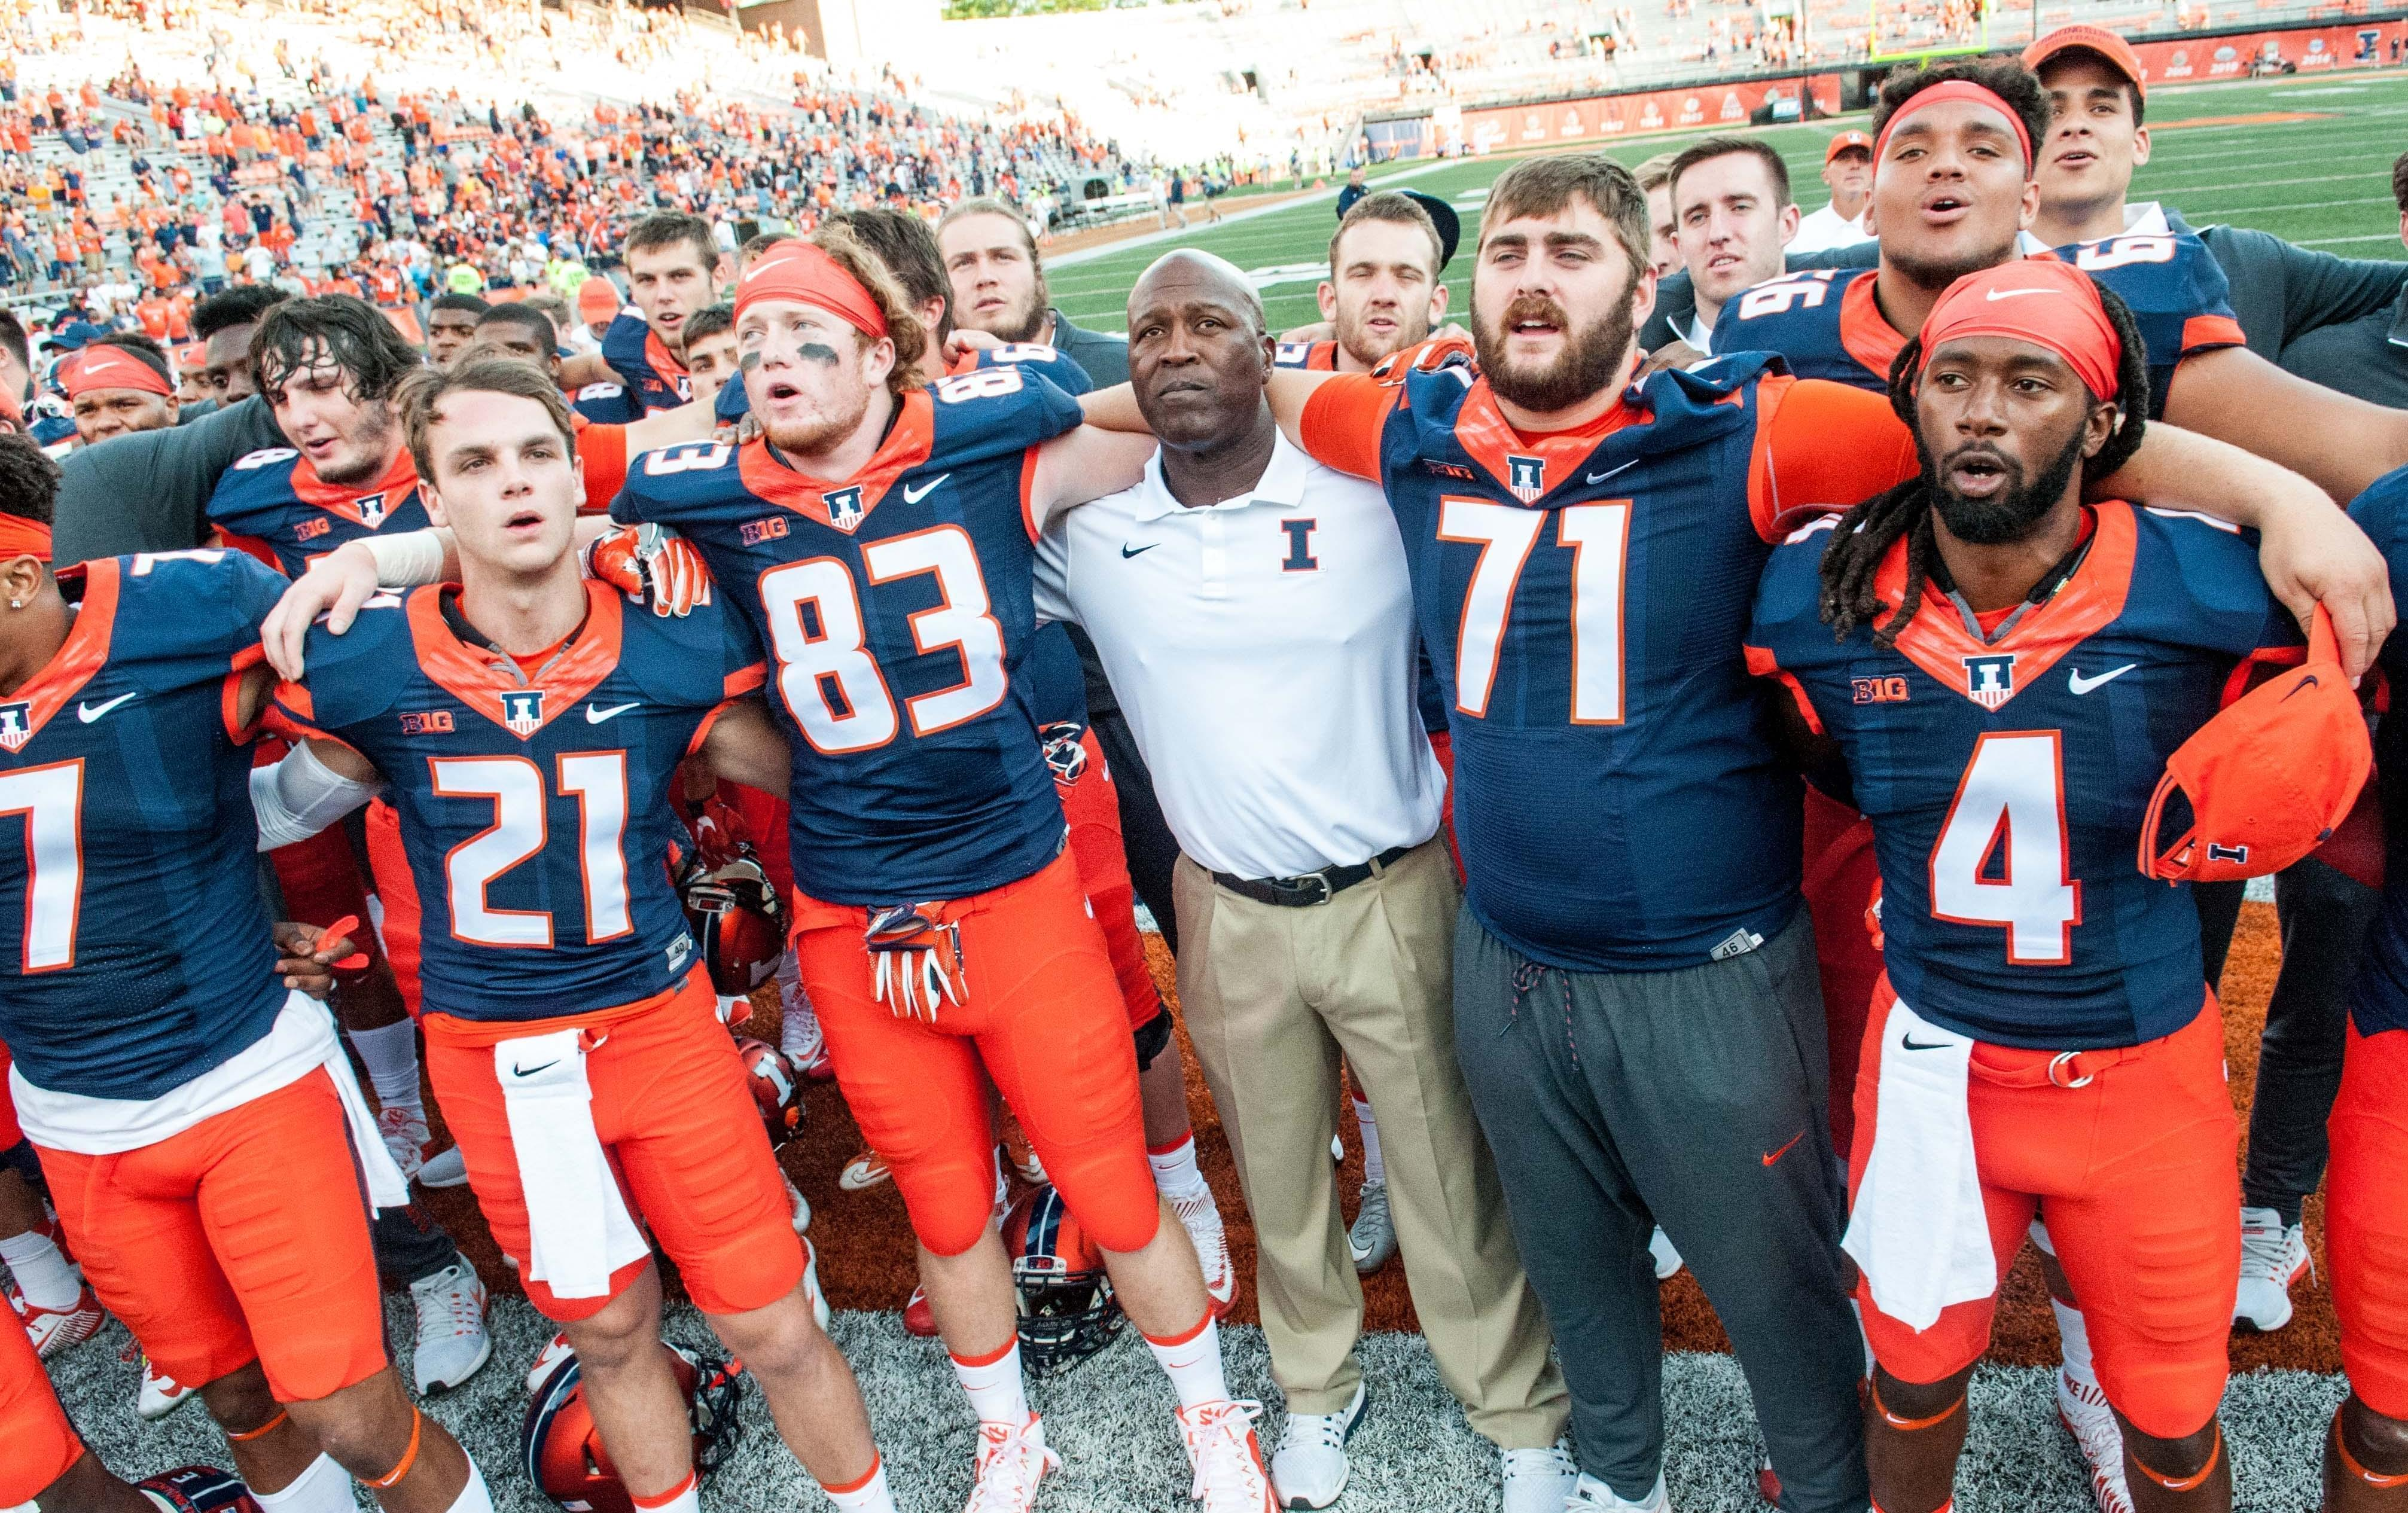 Illinois head coach Lovie Smith, center, sings the alma mater with the team after Illinois defeated Murray State 52-3 in an NCAA college football game Saturday, Sept. 3, 2016 at Memorial Stadium in Champaign.